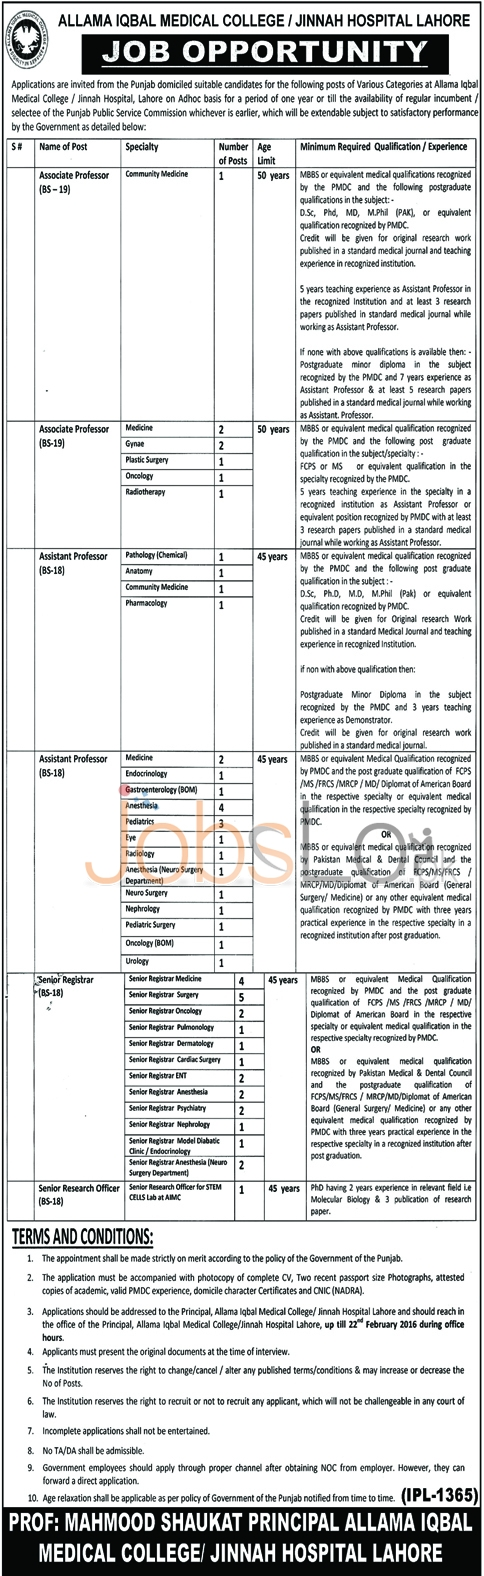 AIMC Jobs in Lahore February 2016 Latest Advertisement